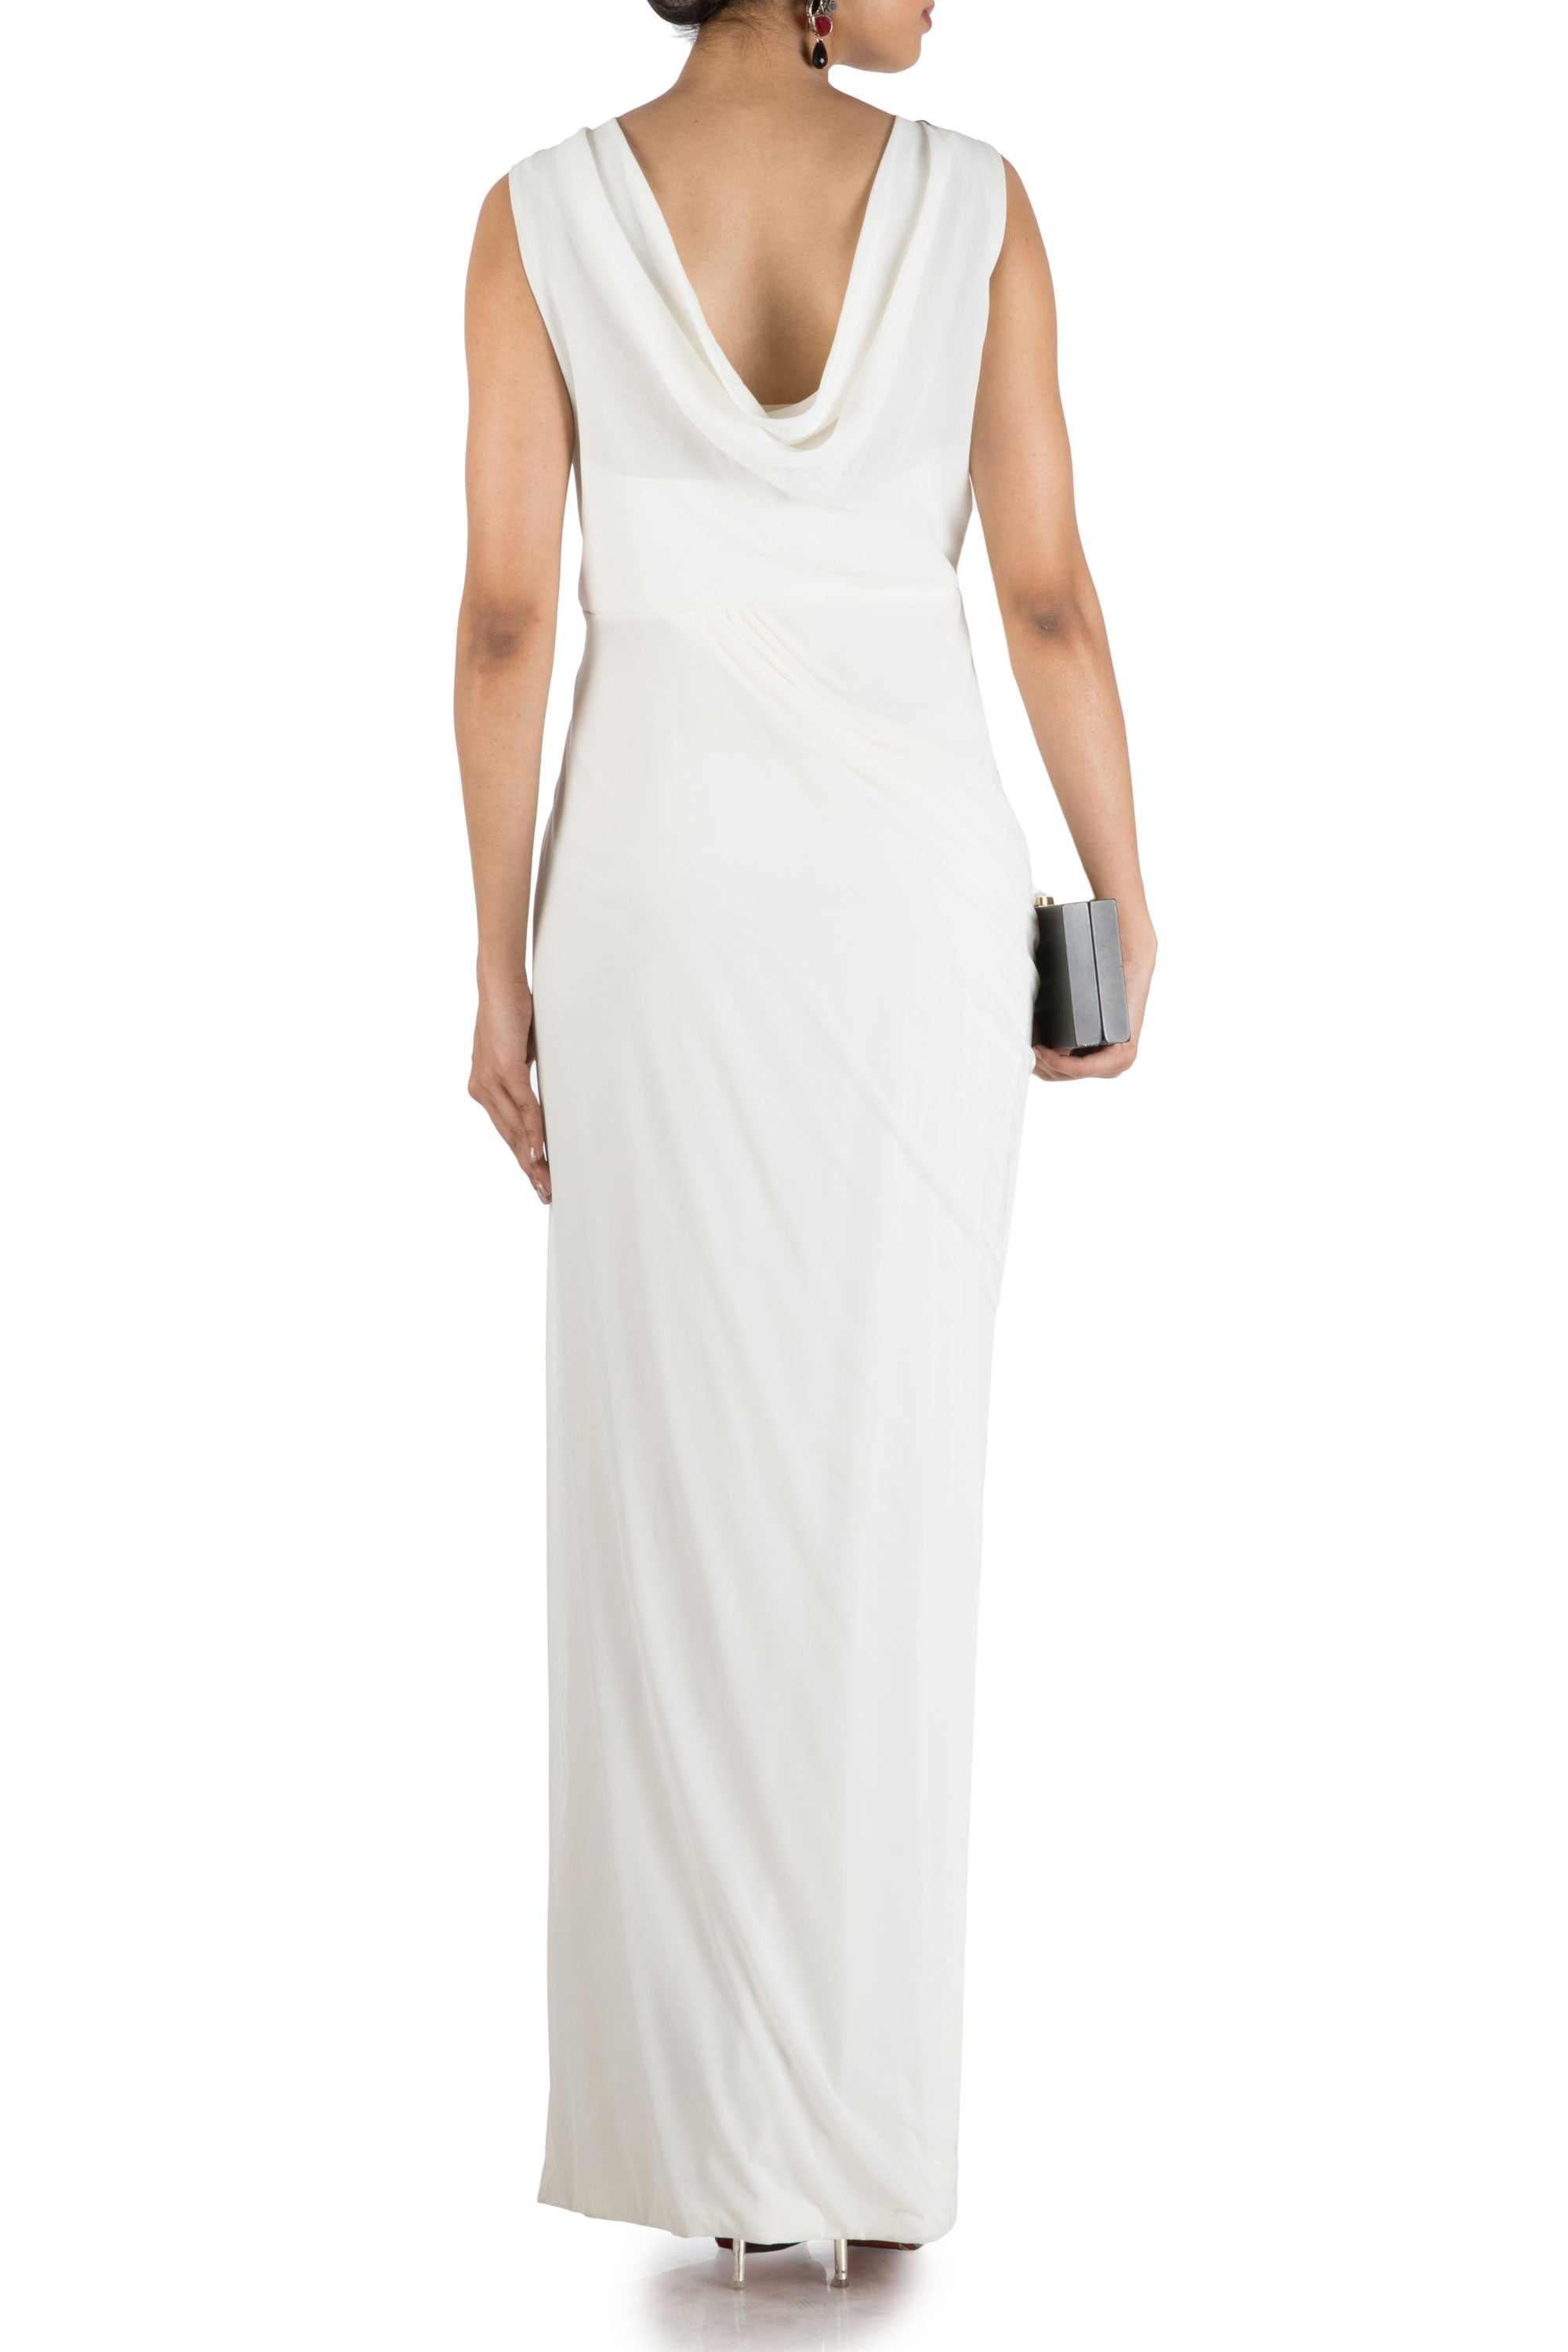 Ivory Drape Cocktail Dress Back